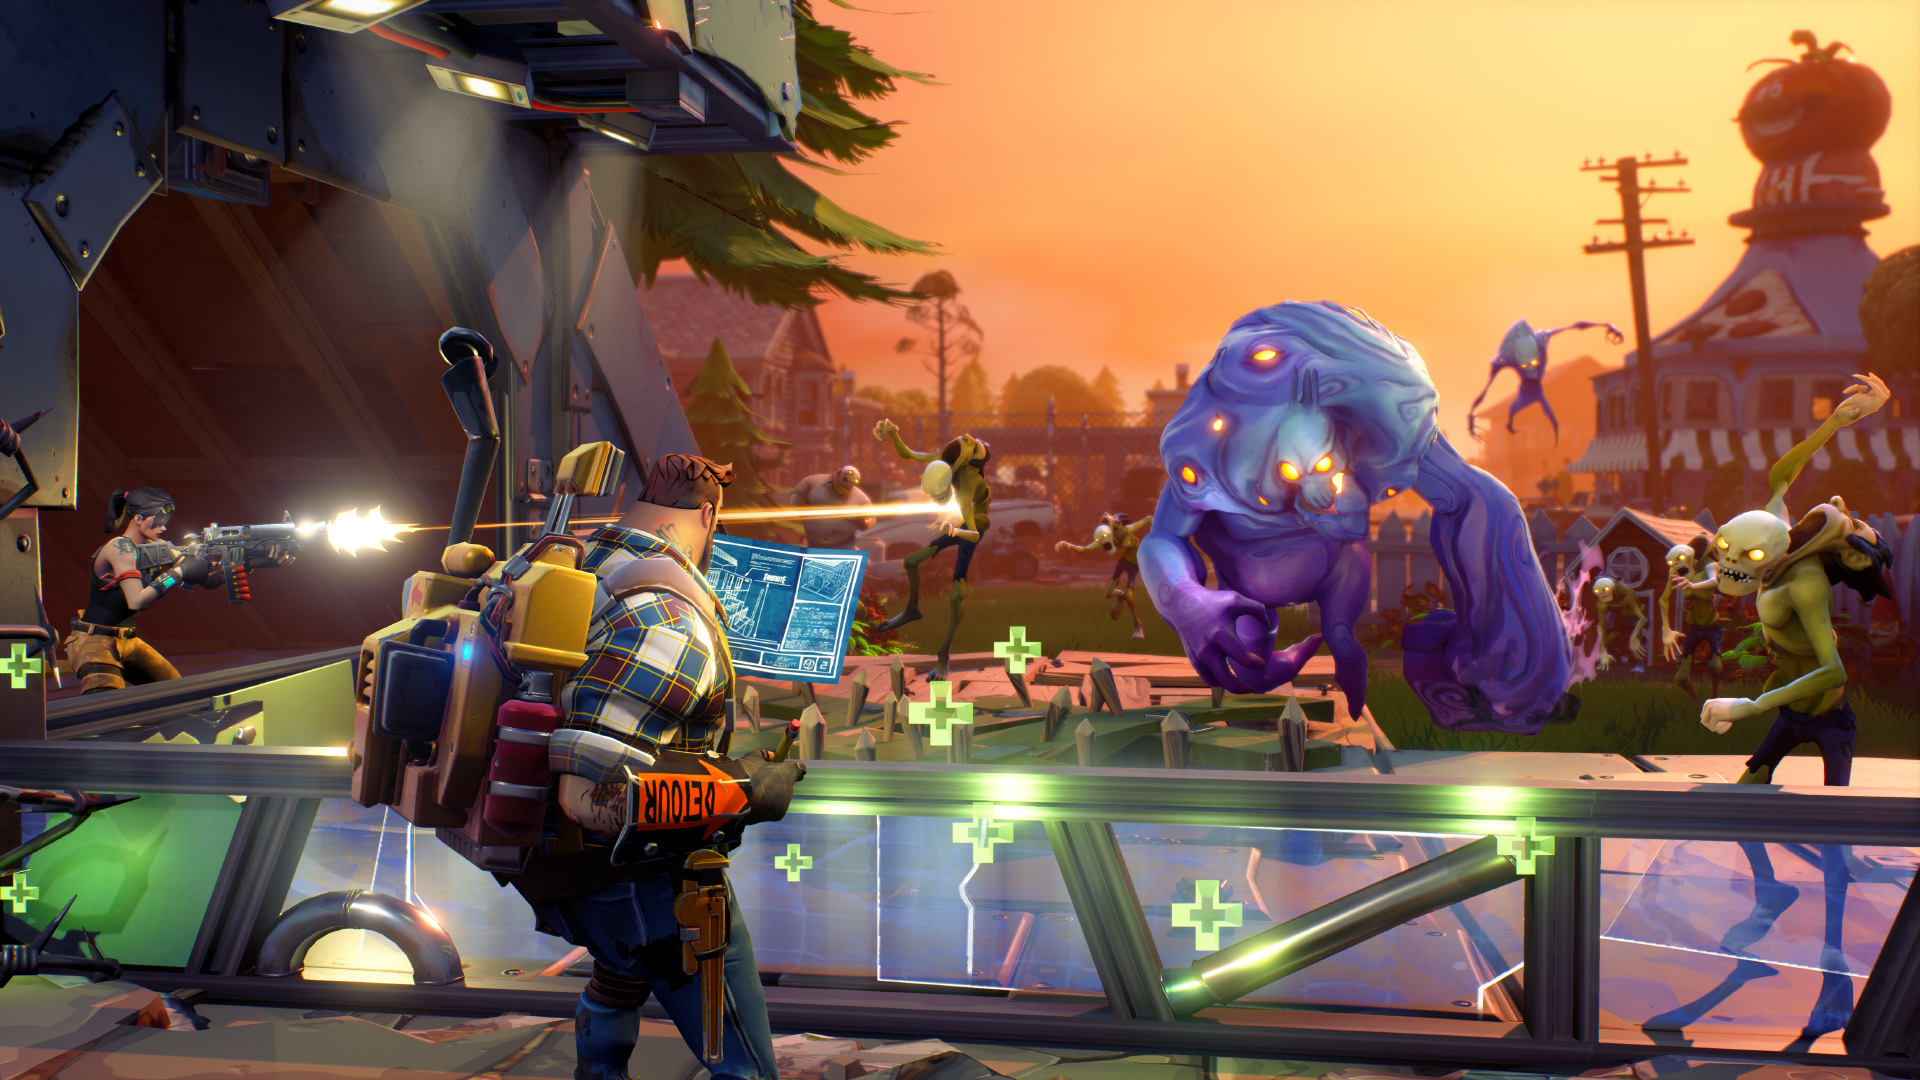 Fortnite Founder\u002639;s Packs Now Available: Gain Early Access To Epic\u2019s ActionBuilding